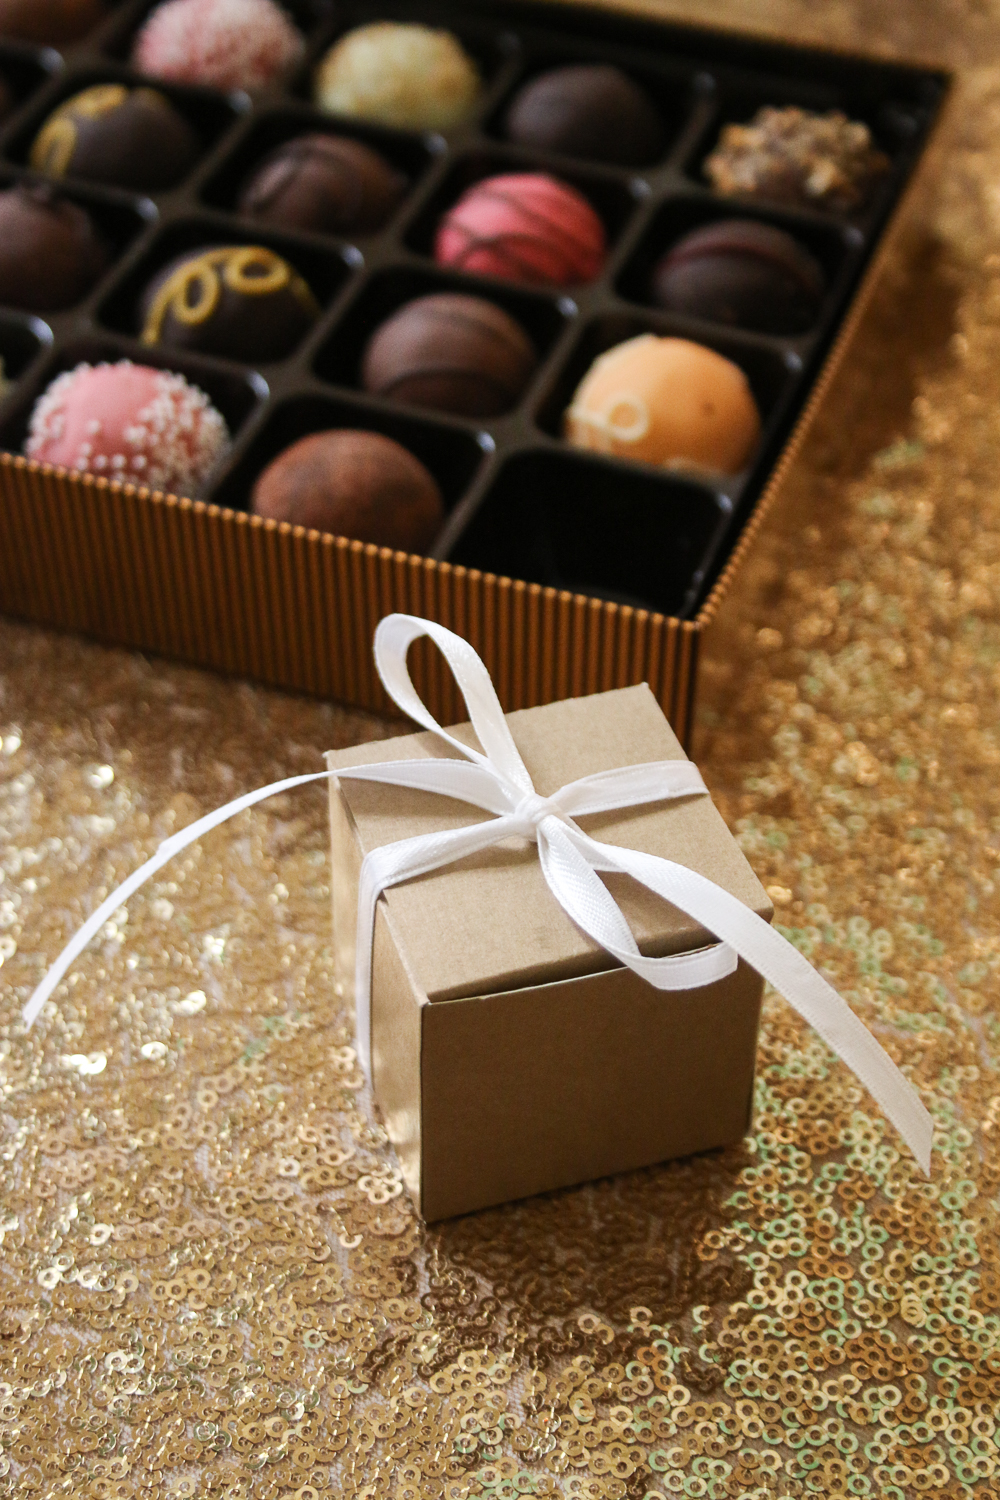 godiva individually wrapped truffles